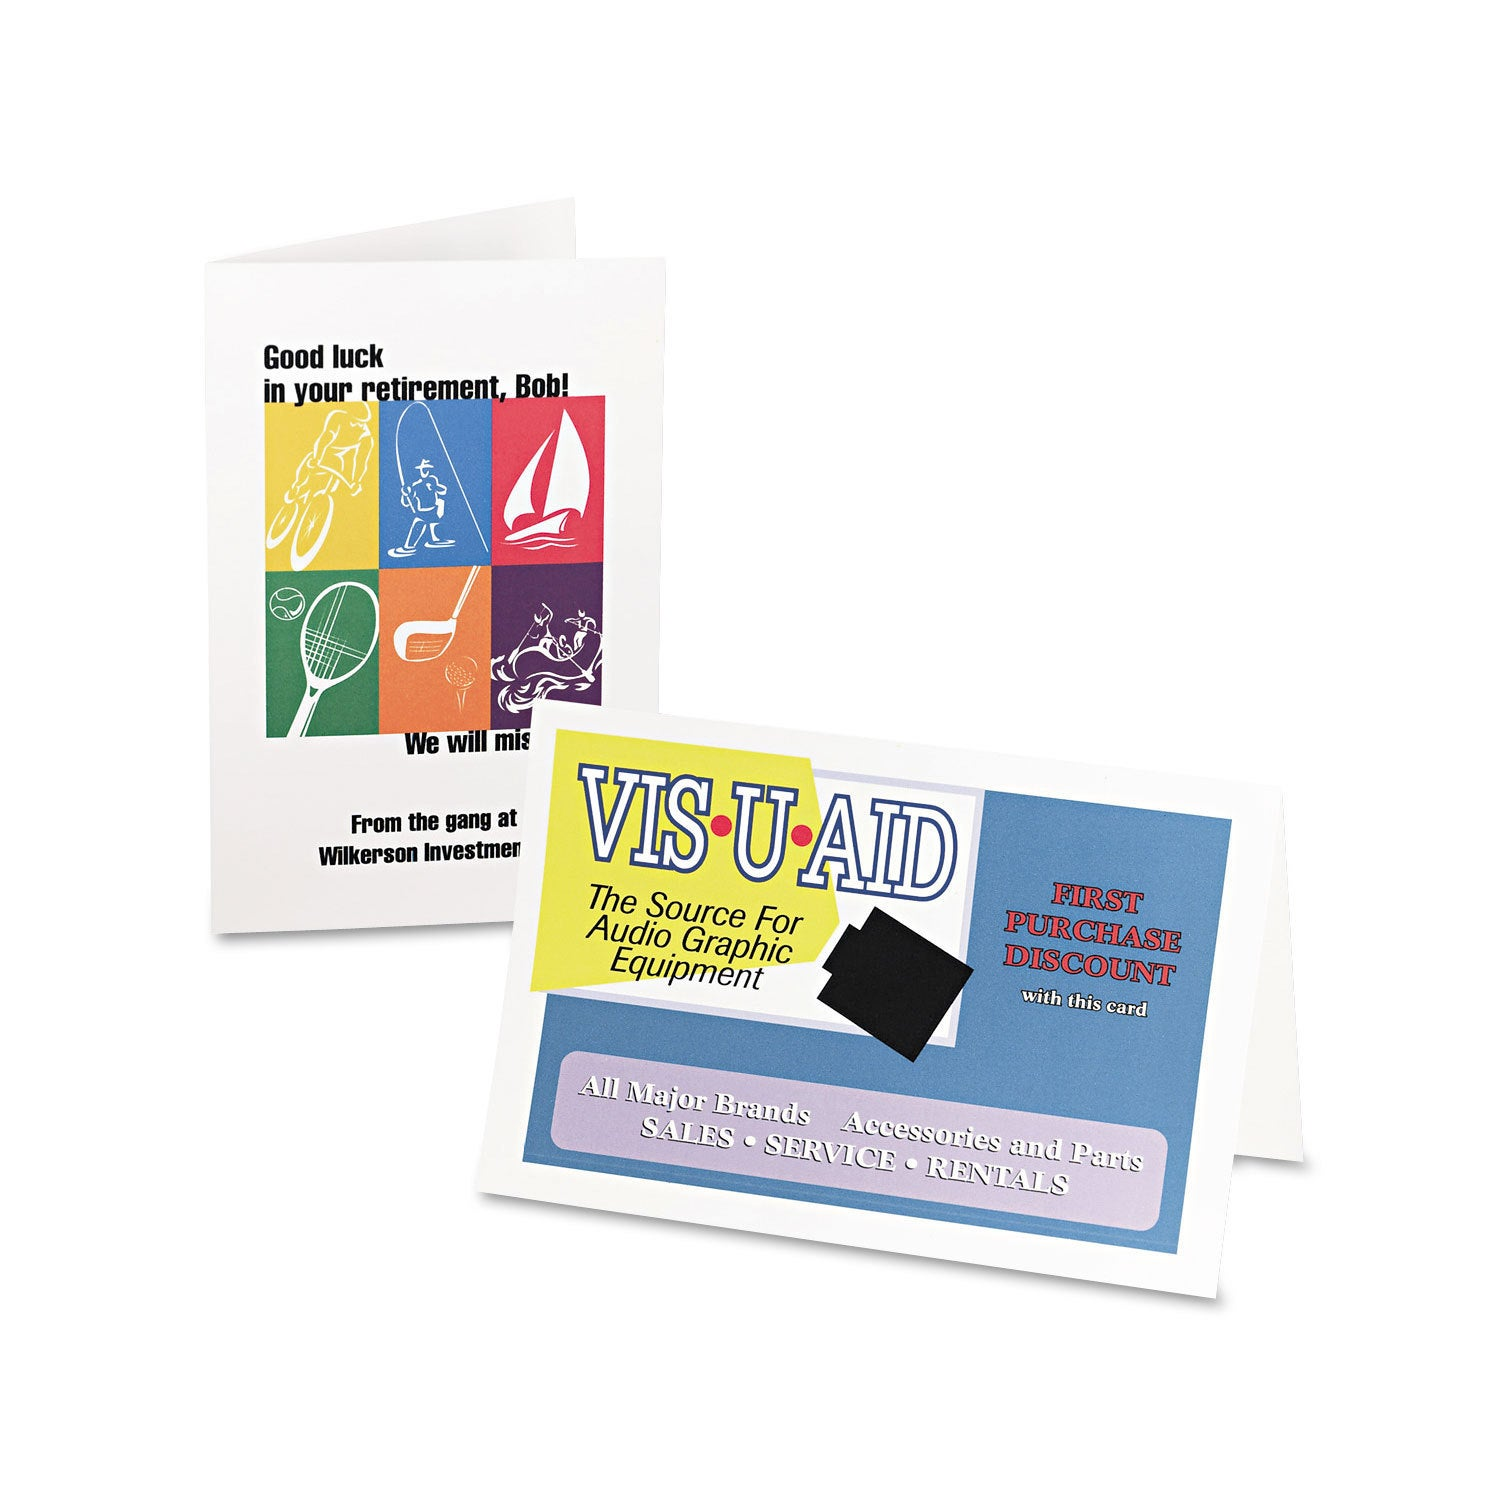 Shop avery half fold greeting cards inkjet 5 12 x 8 12 matte white shop avery half fold greeting cards inkjet 5 12 x 8 12 matte white 30box with envelopes free shipping on orders over 45 overstock 13997201 m4hsunfo